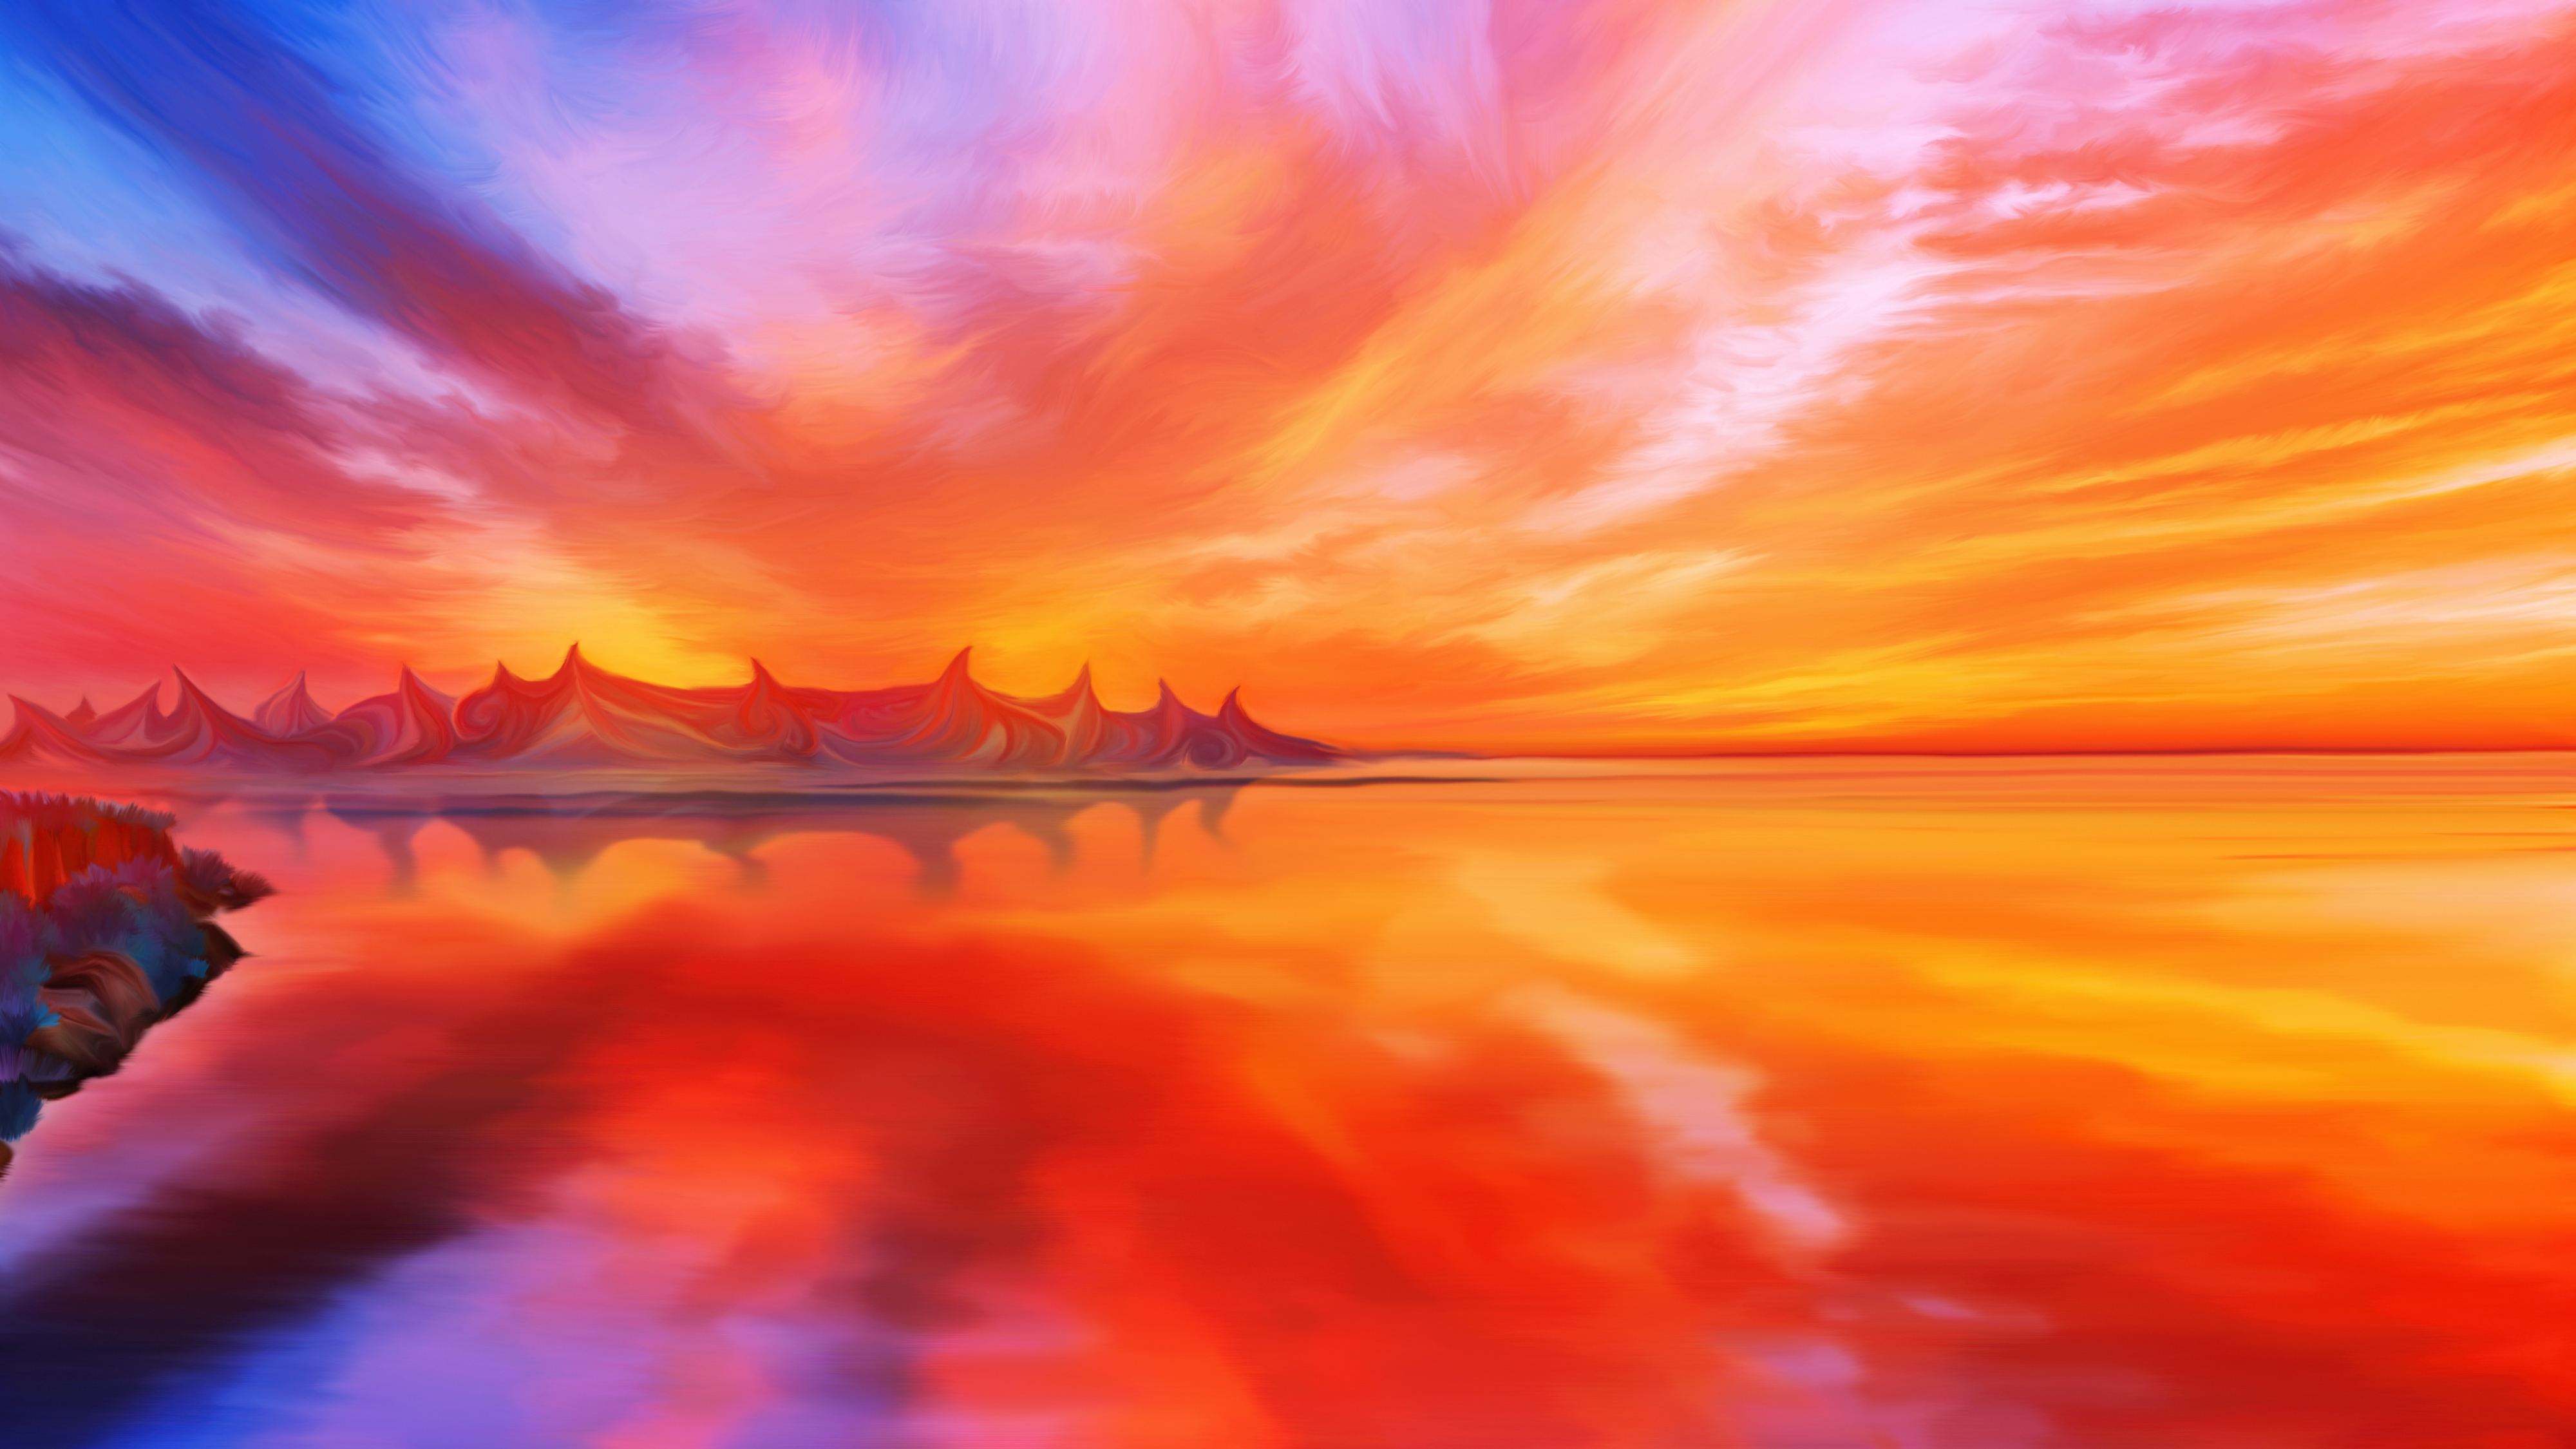 Ardor planet flame mountains by exobiology